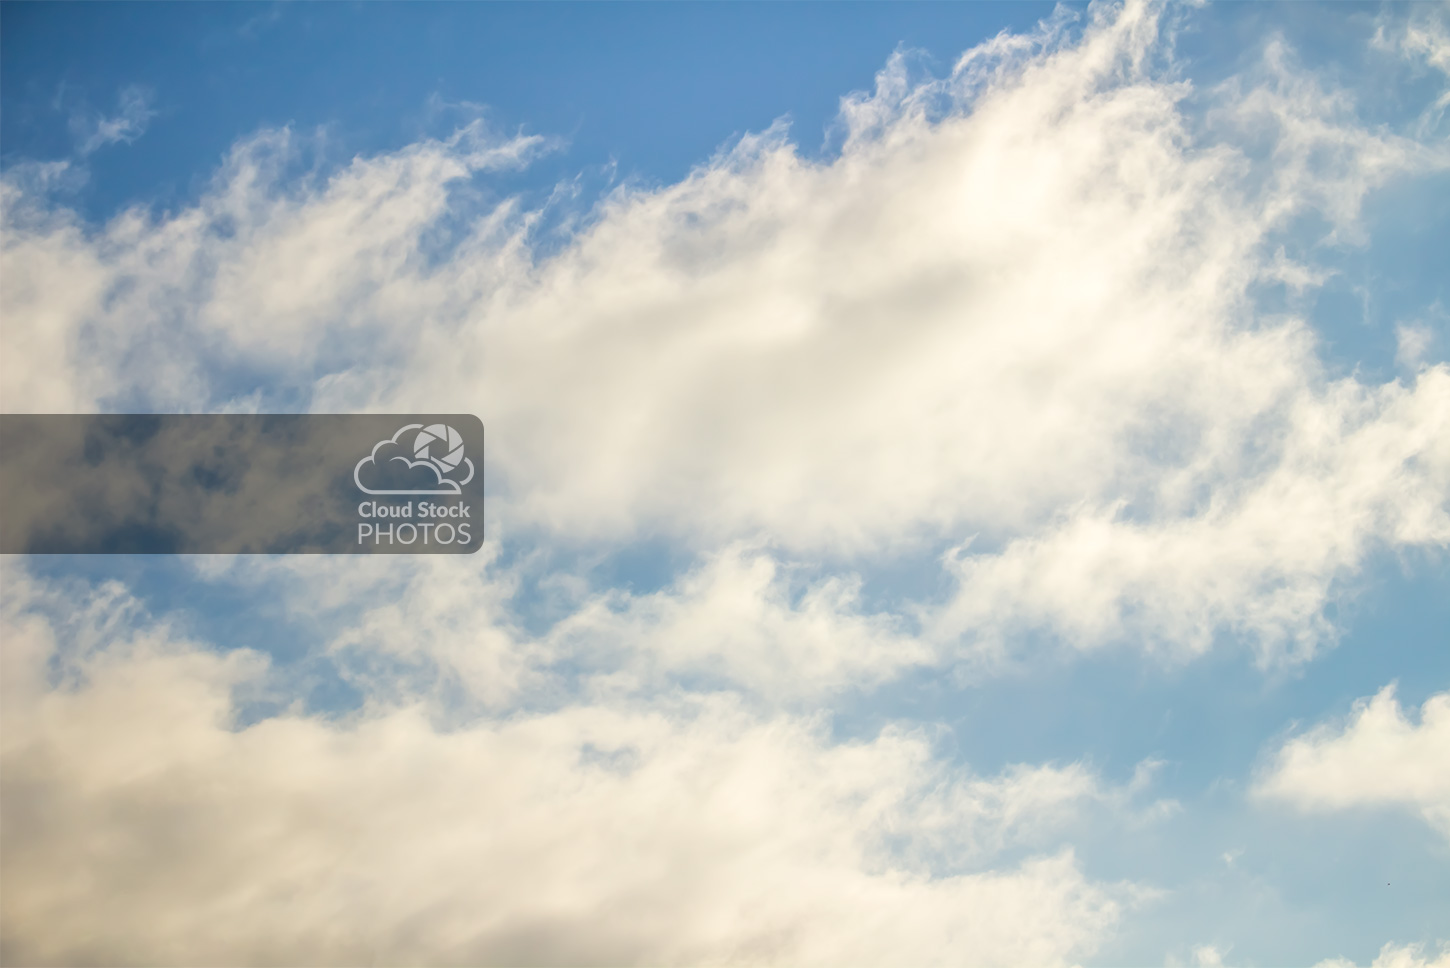 A stock image of large light gray clouds with a slight yellow hue and a pale blue sky background.